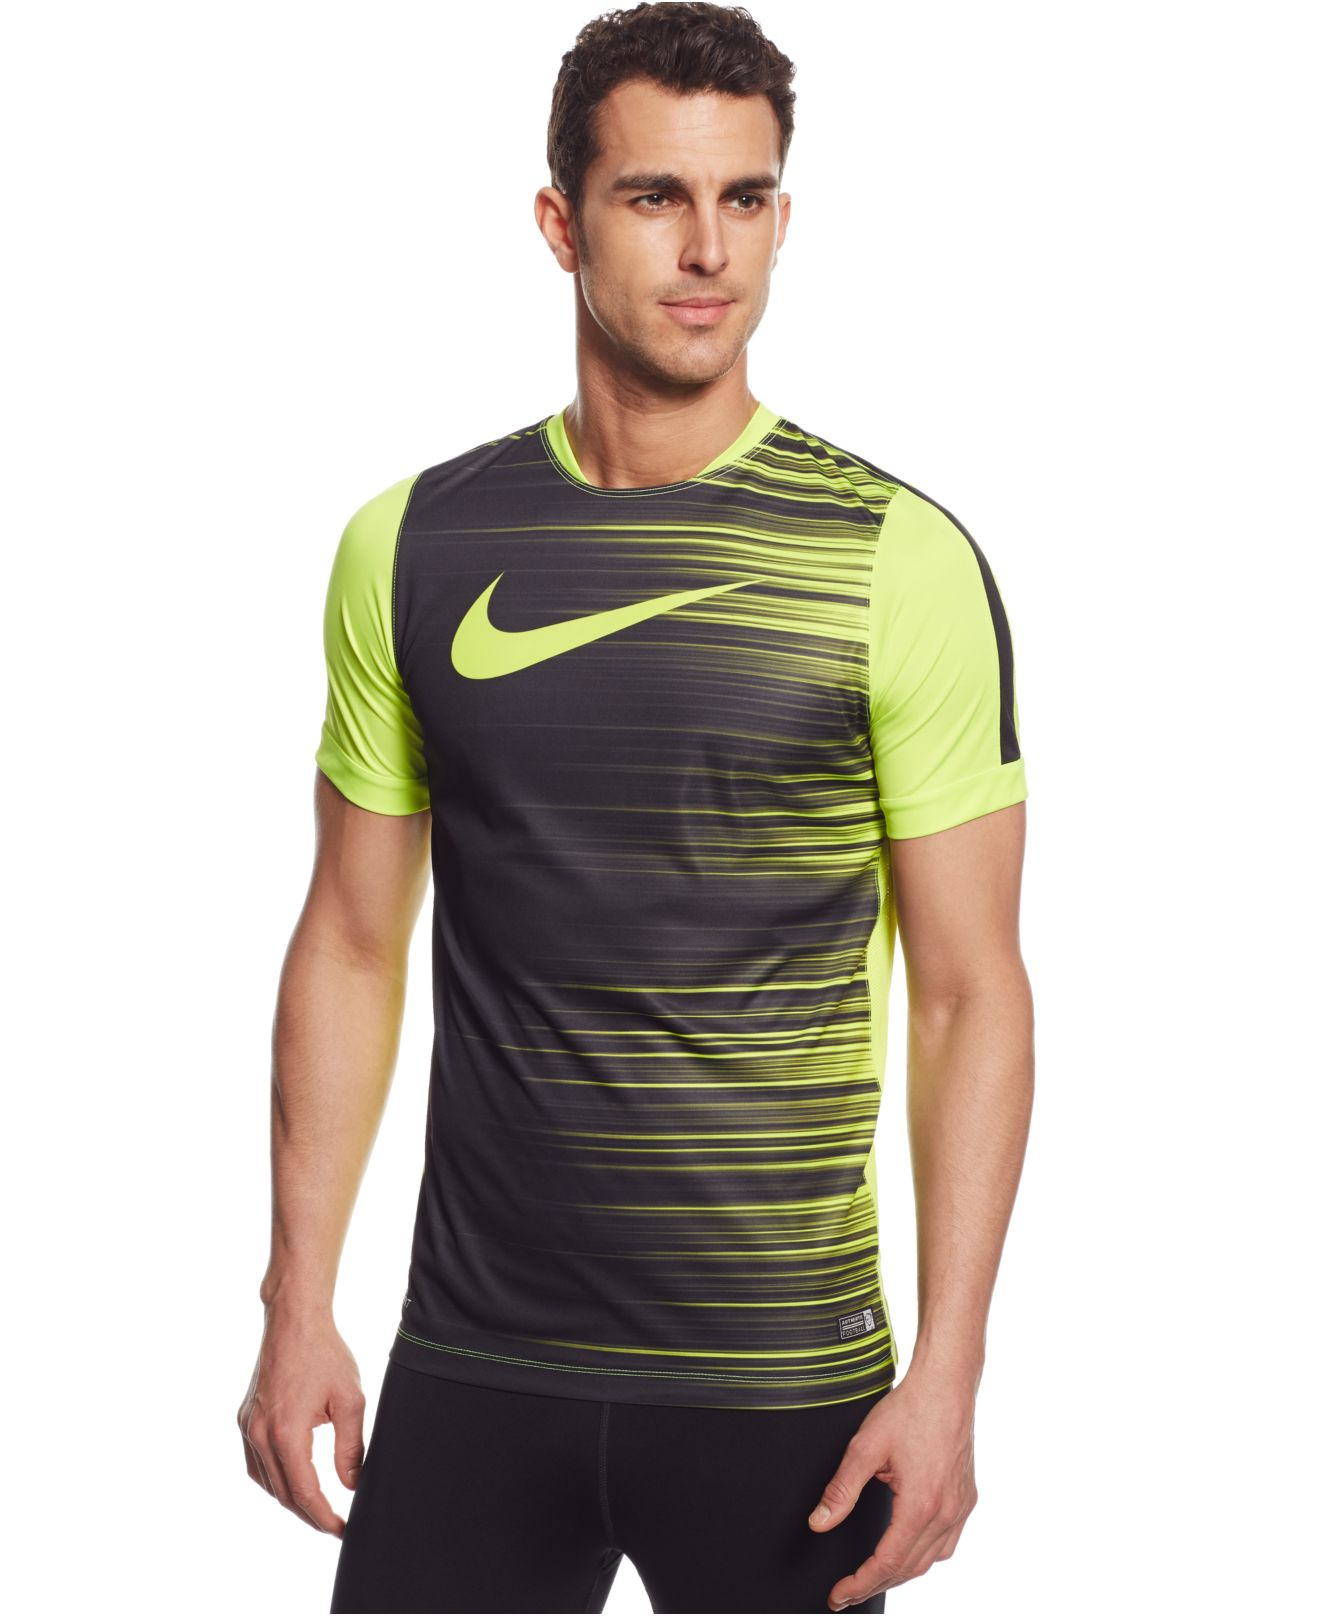 Nike dri fit gpx flash t shirt in yellow for men lyst Fitness shirts for men